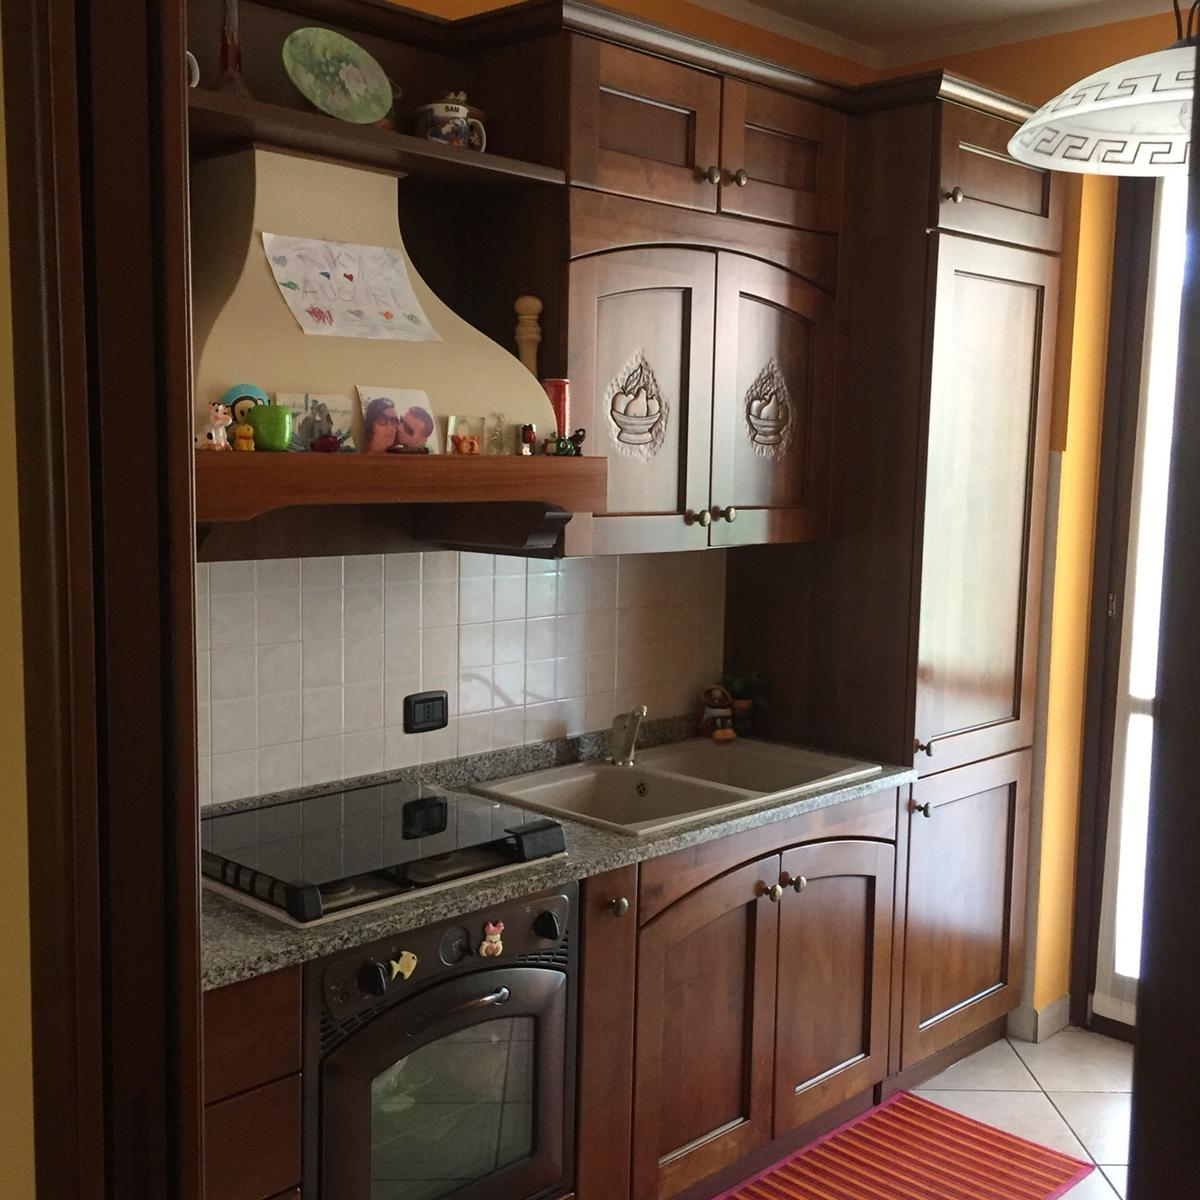 Tavolo In Arte Povera Allungabile.Cucina Arte Povera In 21017 Samarate For 600 00 For Sale Shpock